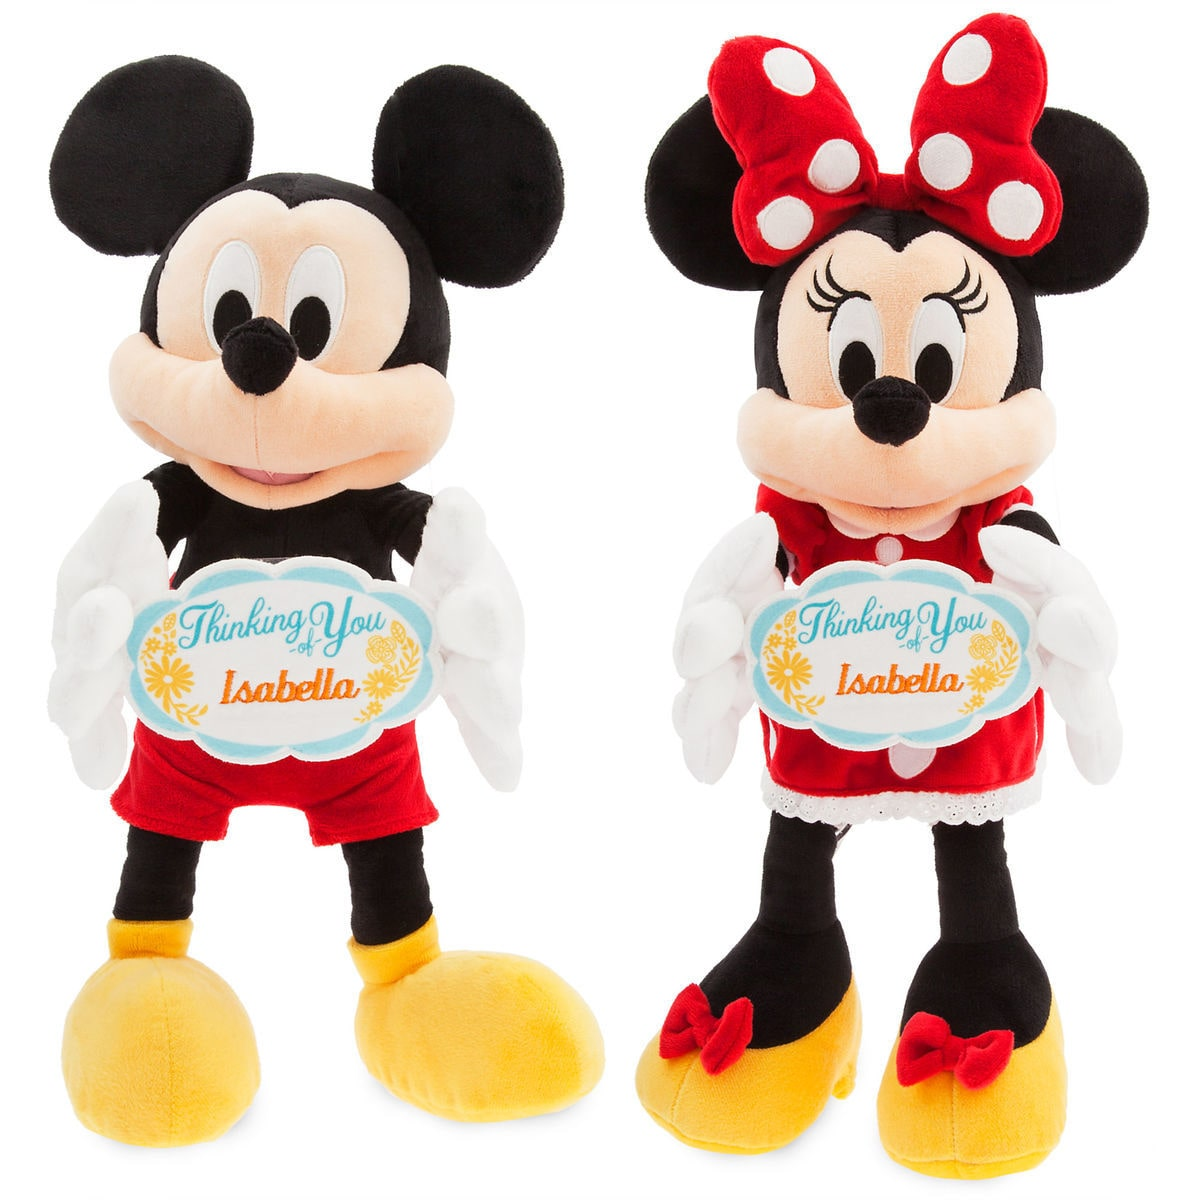 mickey and minnie mouse thinking of you message plush collection